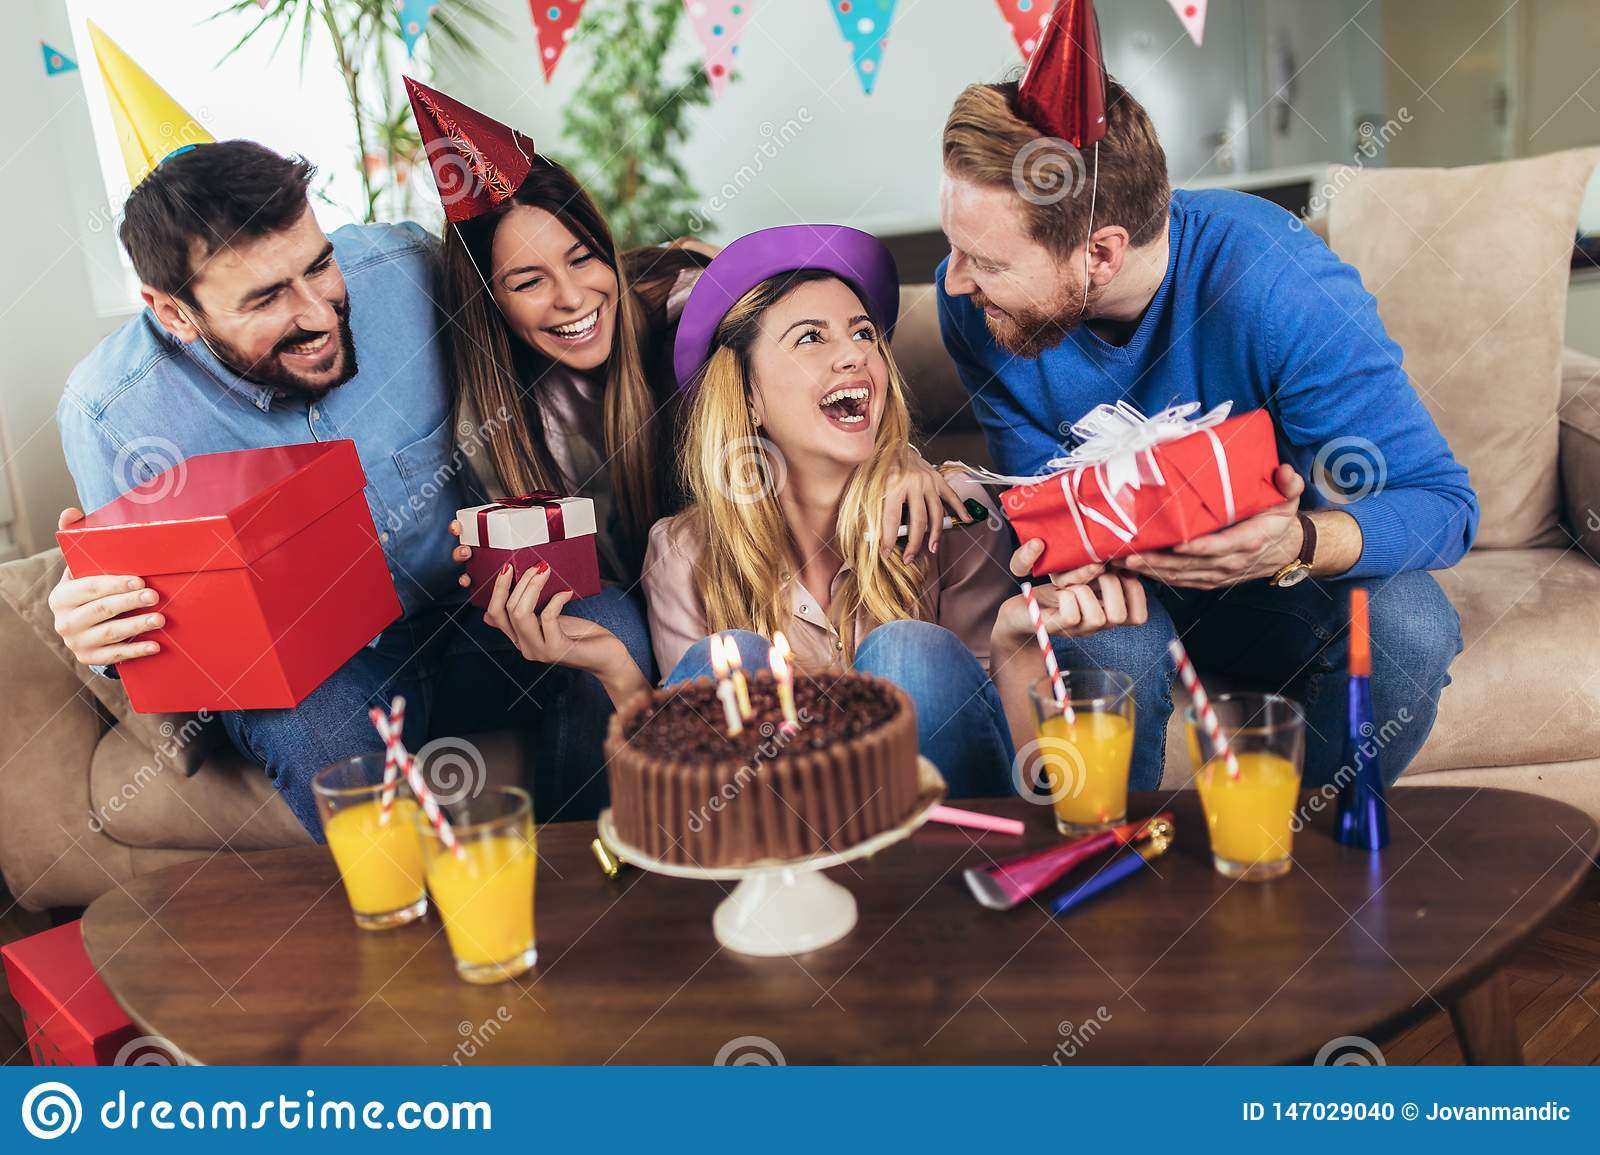 Group of happy friends celebrating birthday at home and having fun